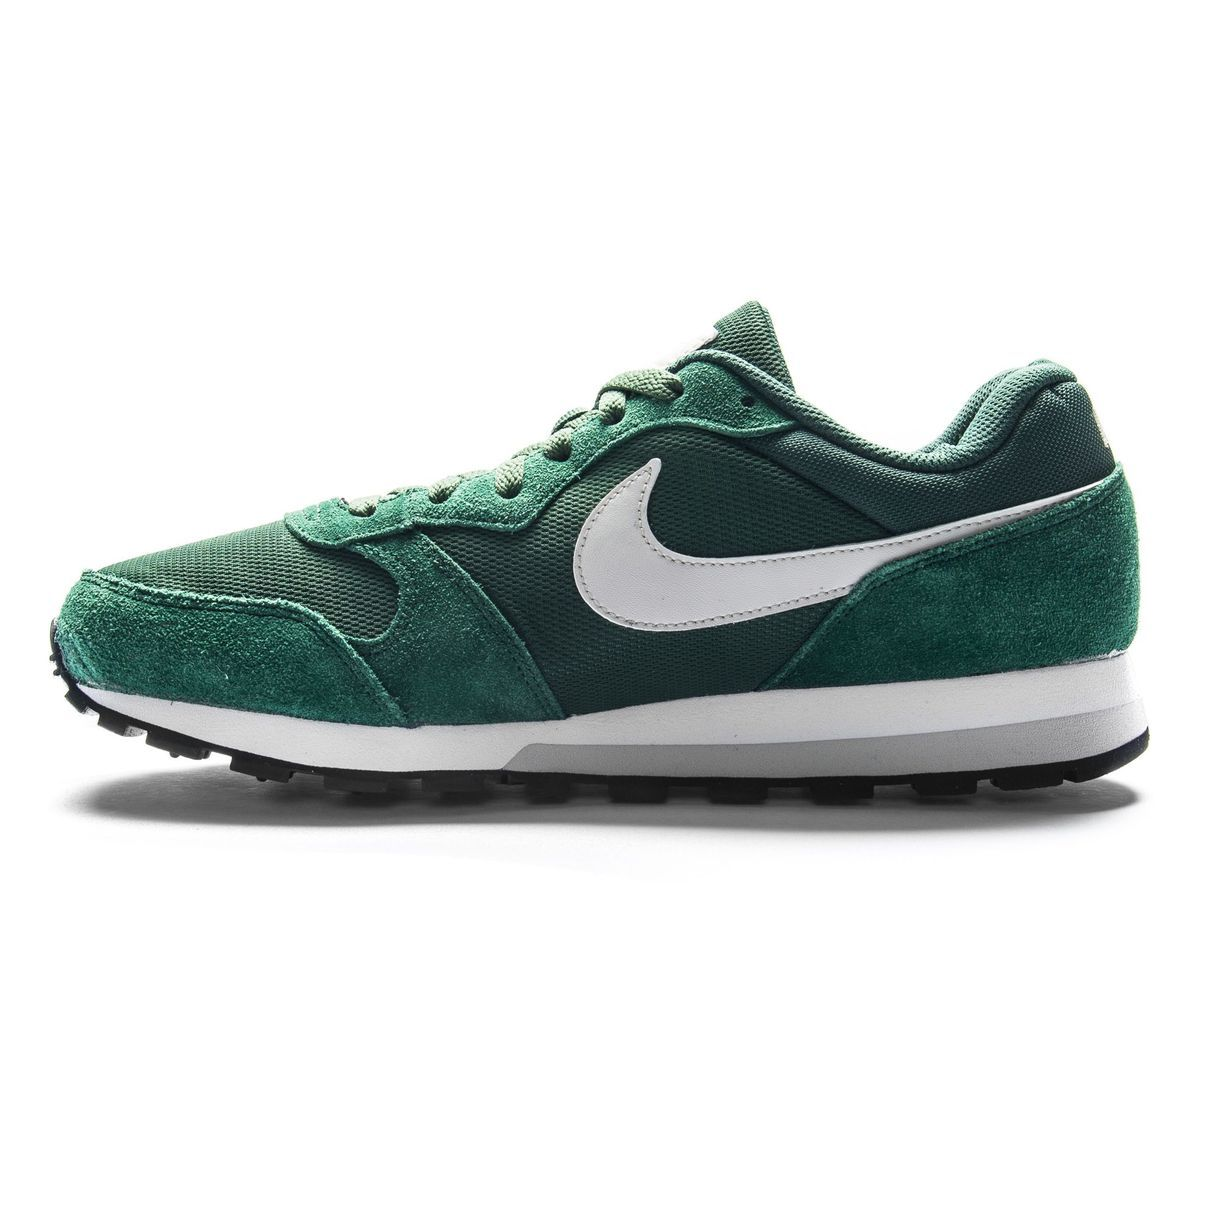 Respeto a ti mismo Están deprimidos Sesión plenaria  Nike MD Runner 2 Team Gorge Green/Light Bone/White | Nike, Bone white,  Sneakers fashion